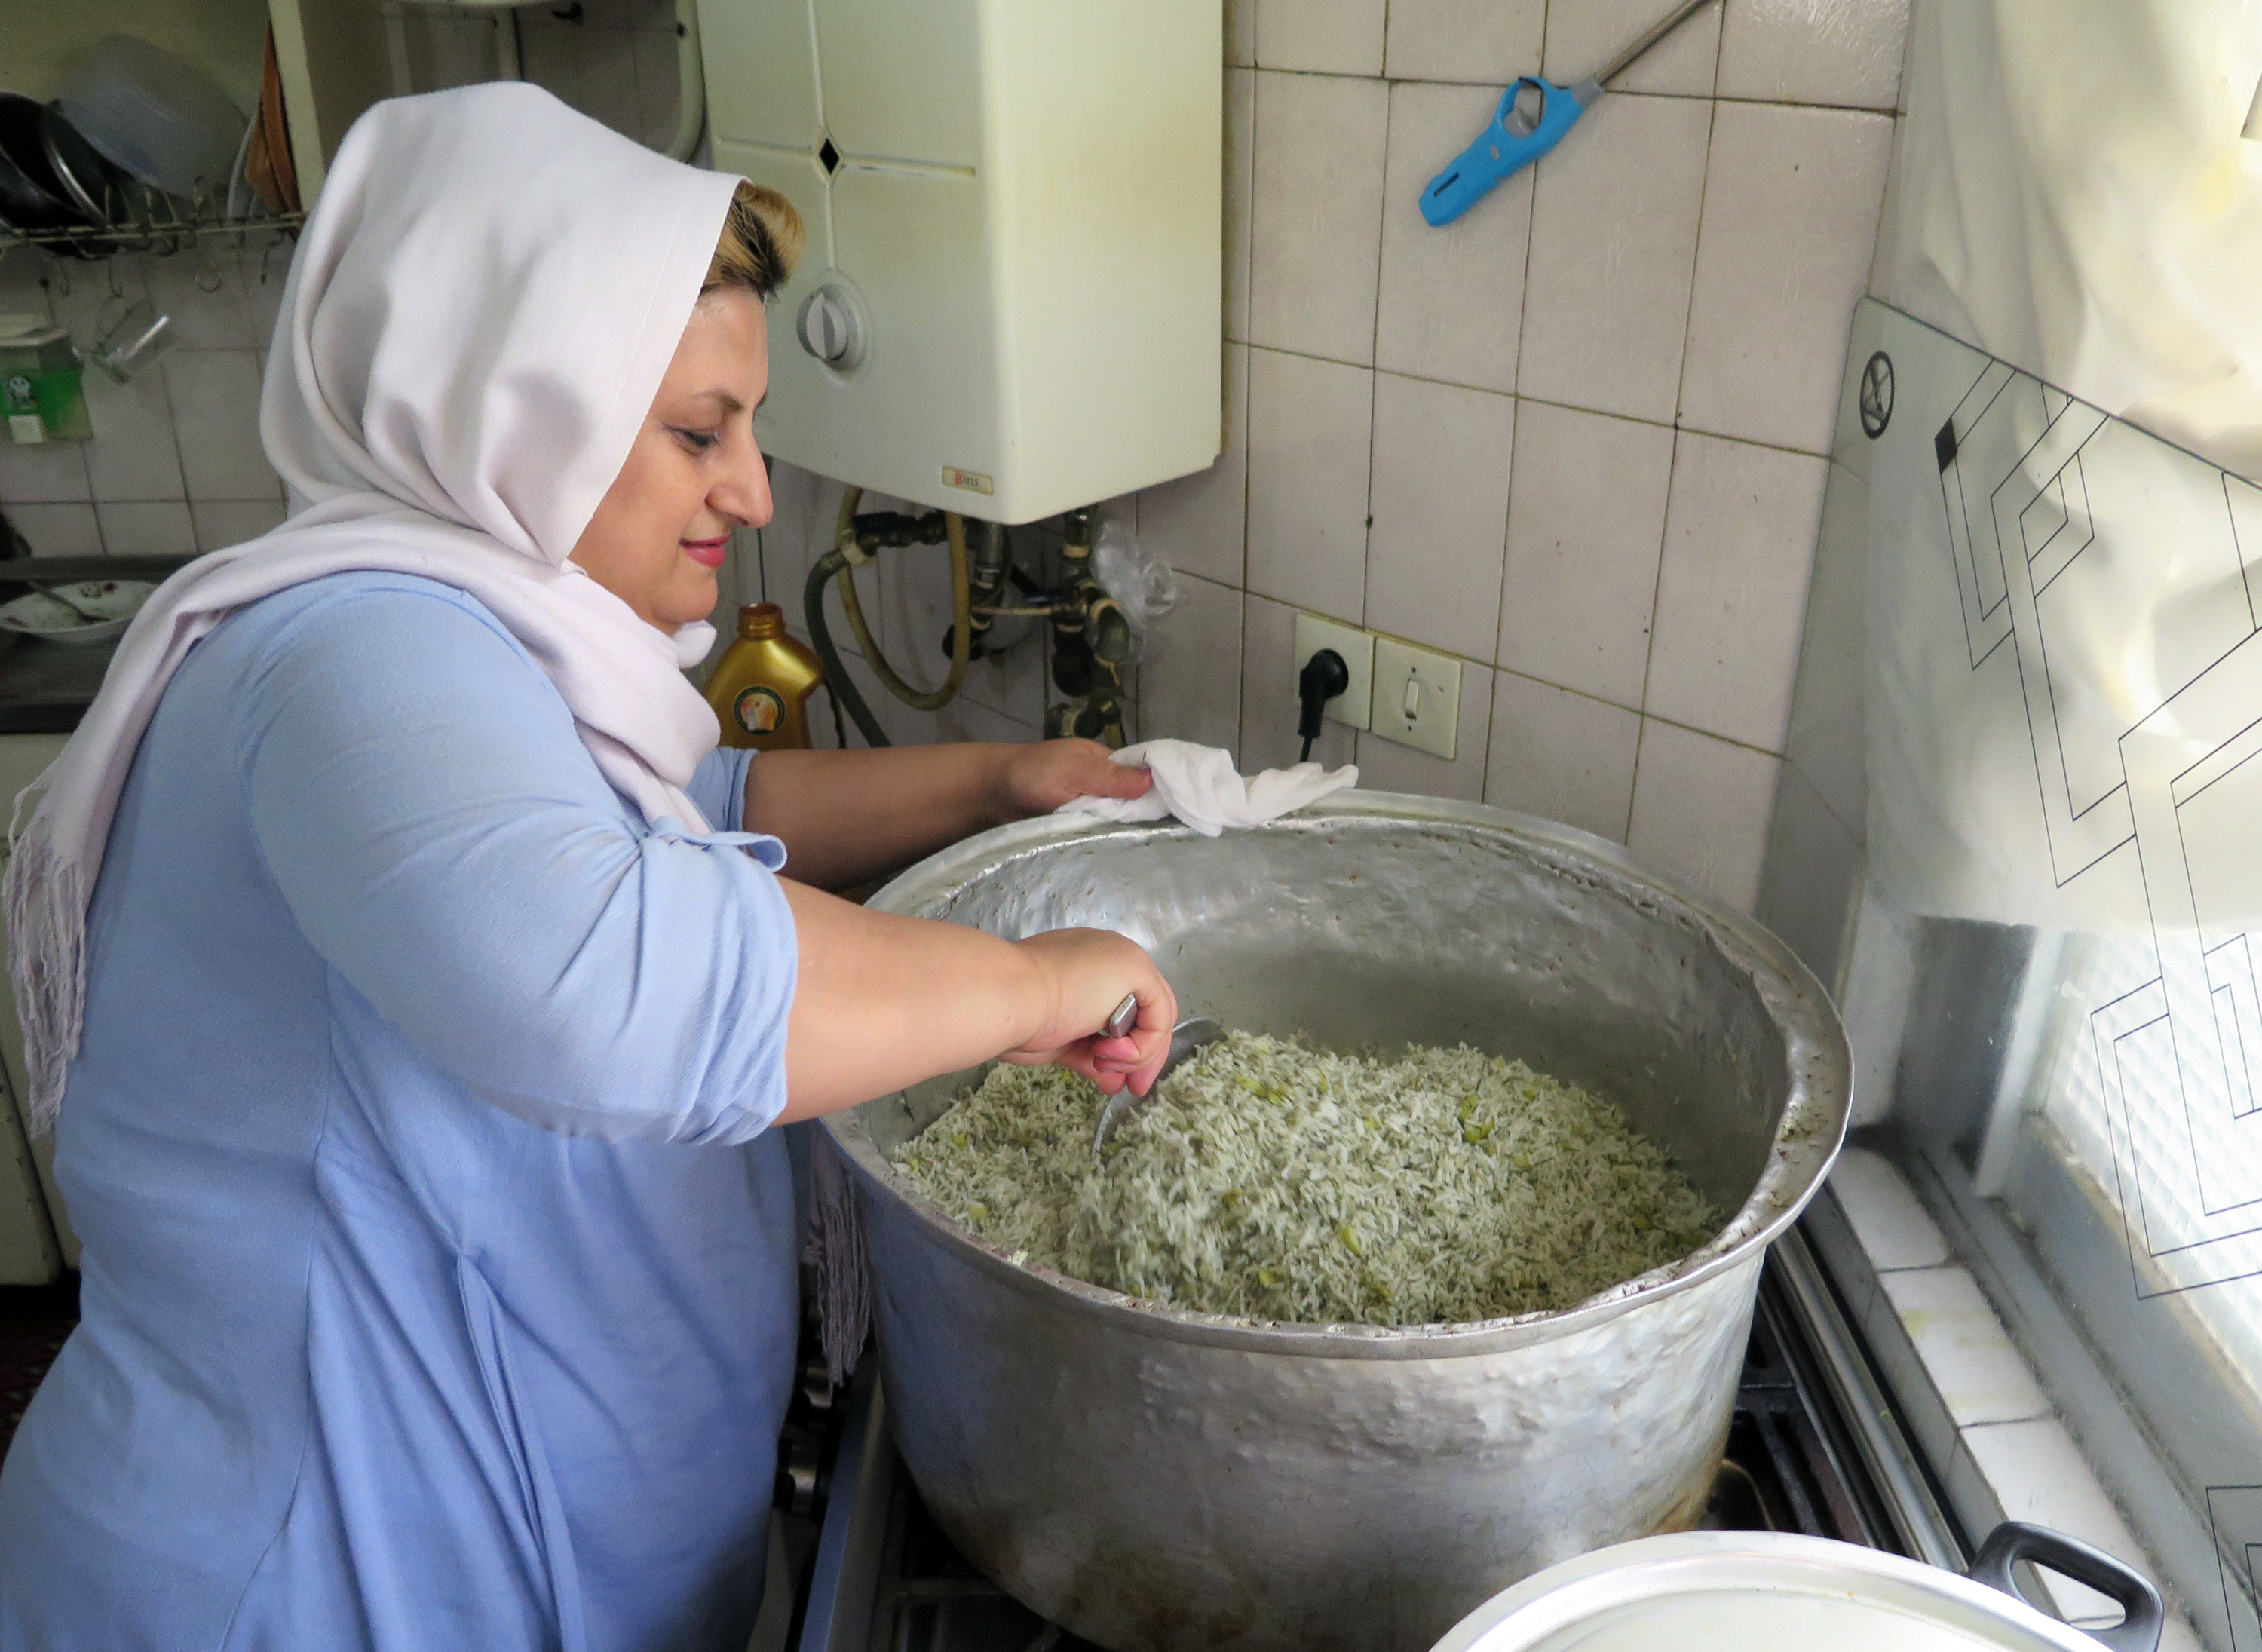 Maral Mohamedzadeh prepares food at her home for Mamanpaz, an organization that works with dozens of housewives to deliver home-cooked meals to businesses.     (Kevin Leahy/NPR)